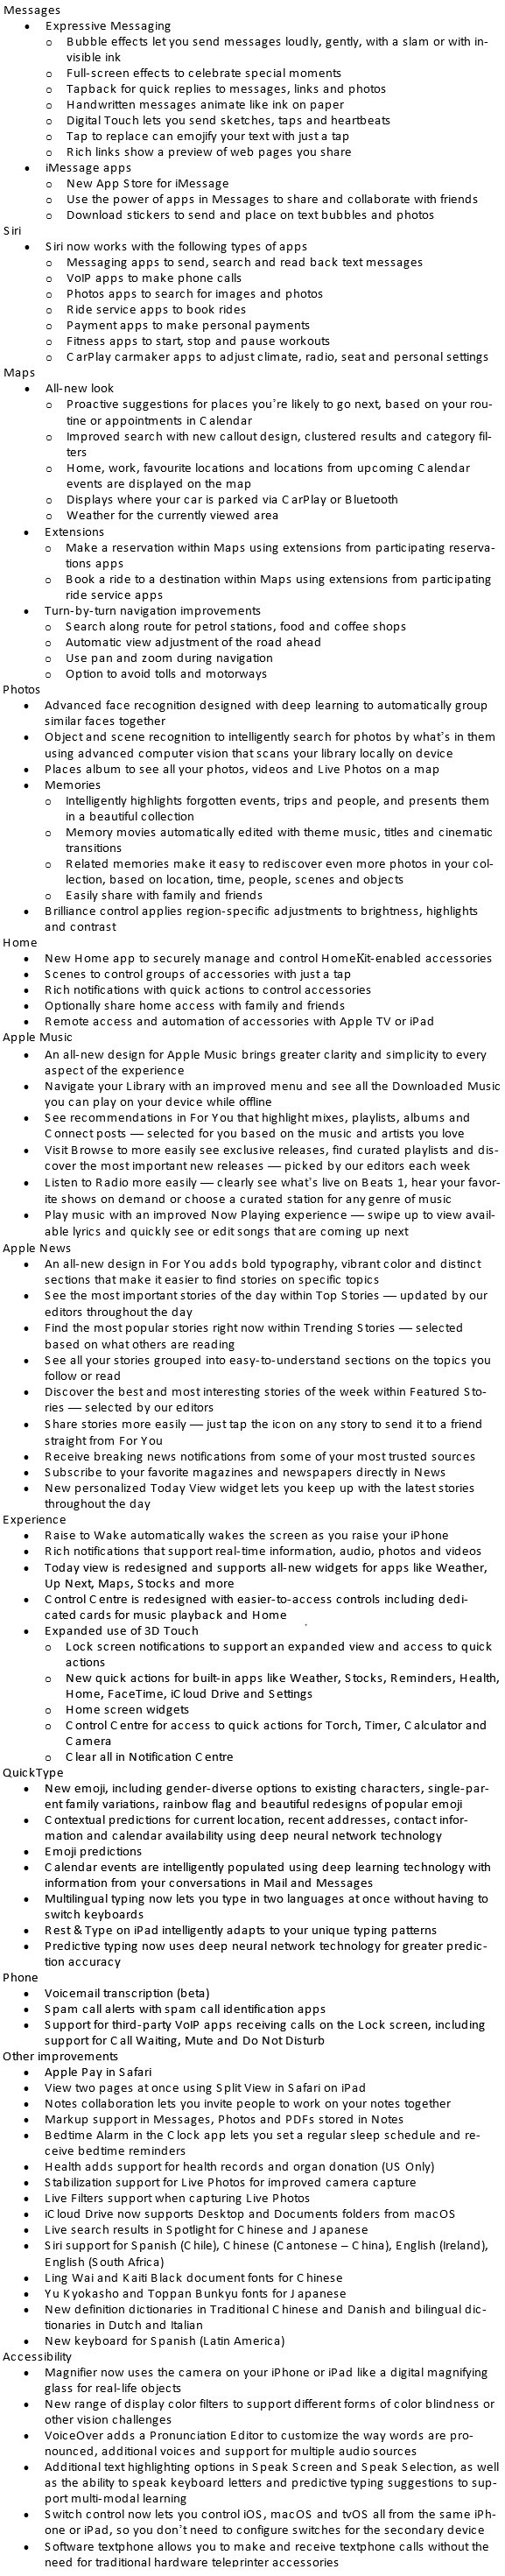 iOS-10-changelog-00